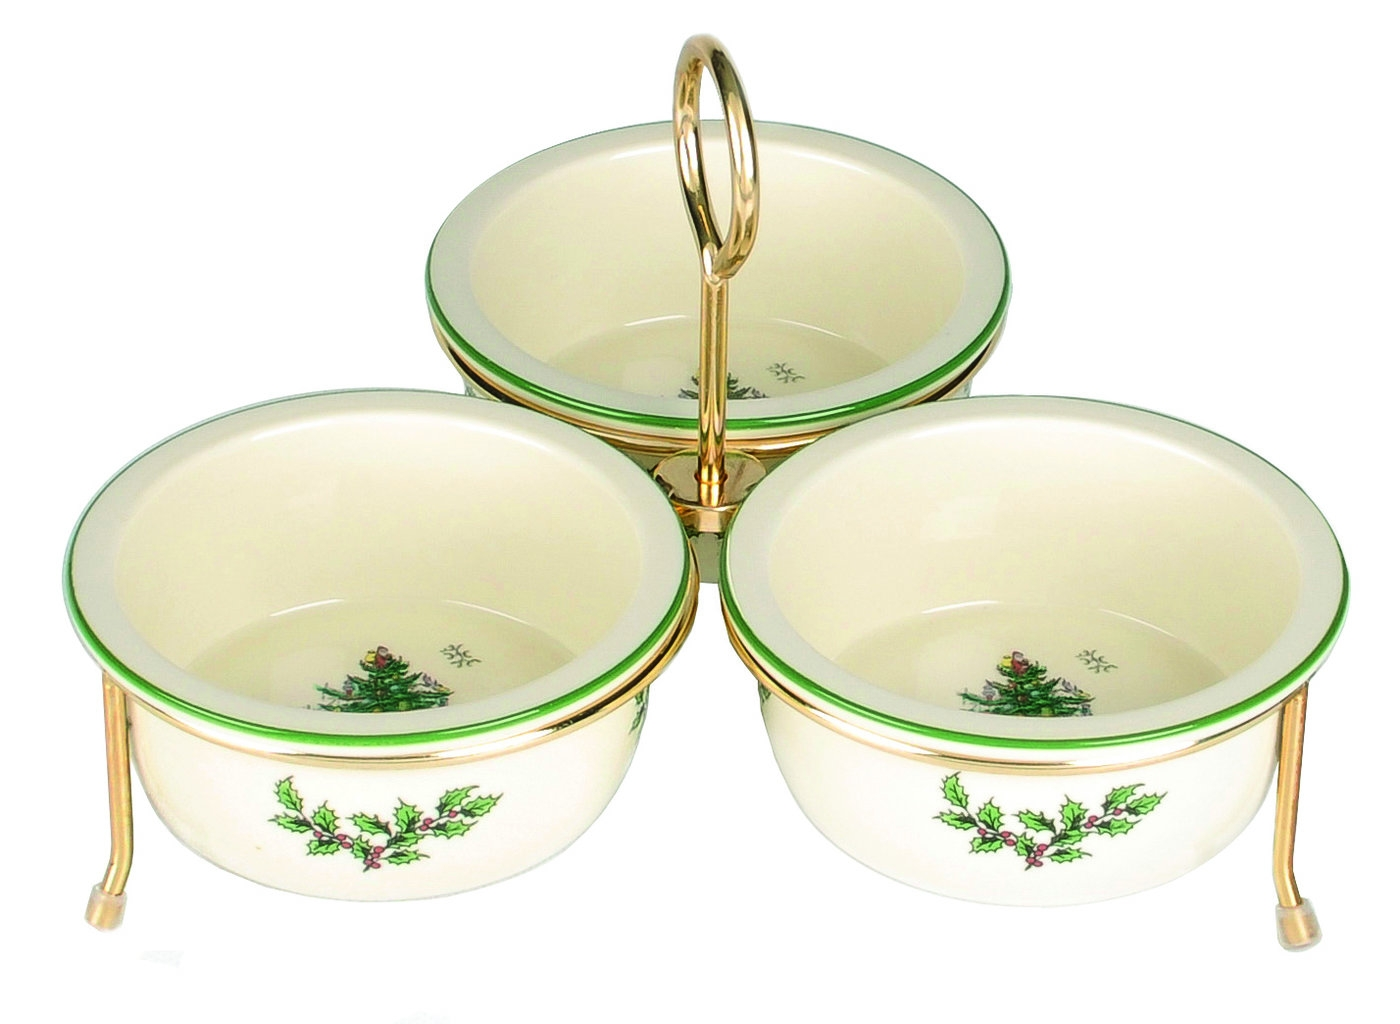 Spode Christmas Tree Set of 3 Bowls with Gold Metal Rack image number 0